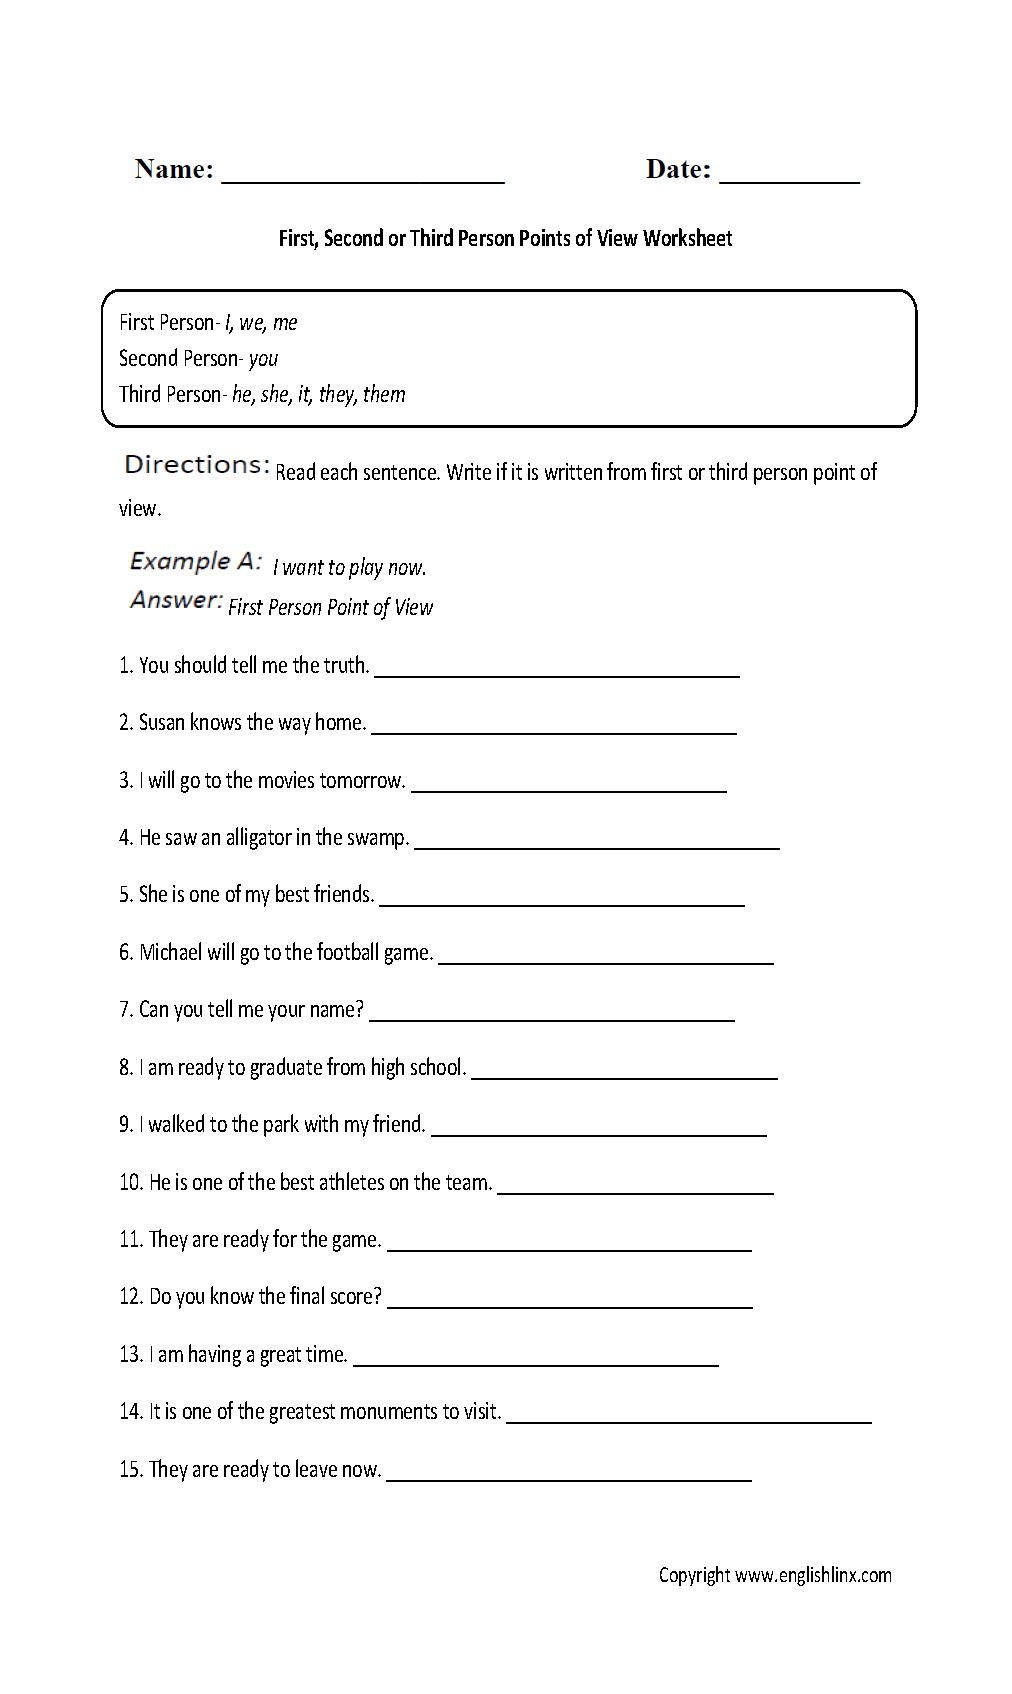 Proatmealus  Gorgeous Englishlinxcom  Point Of View Worksheets With Handsome Point Of View Worksheet With Attractive Accounting Worksheet Example Also Ionic Compound Worksheet  Answers In Addition Worksheets For Reception And Drawing Printable Worksheets As Well As Spanish Worksheets For Th Graders Additionally Perfect Square Worksheets Th Grade From Englishlinxcom With Proatmealus  Handsome Englishlinxcom  Point Of View Worksheets With Attractive Point Of View Worksheet And Gorgeous Accounting Worksheet Example Also Ionic Compound Worksheet  Answers In Addition Worksheets For Reception From Englishlinxcom